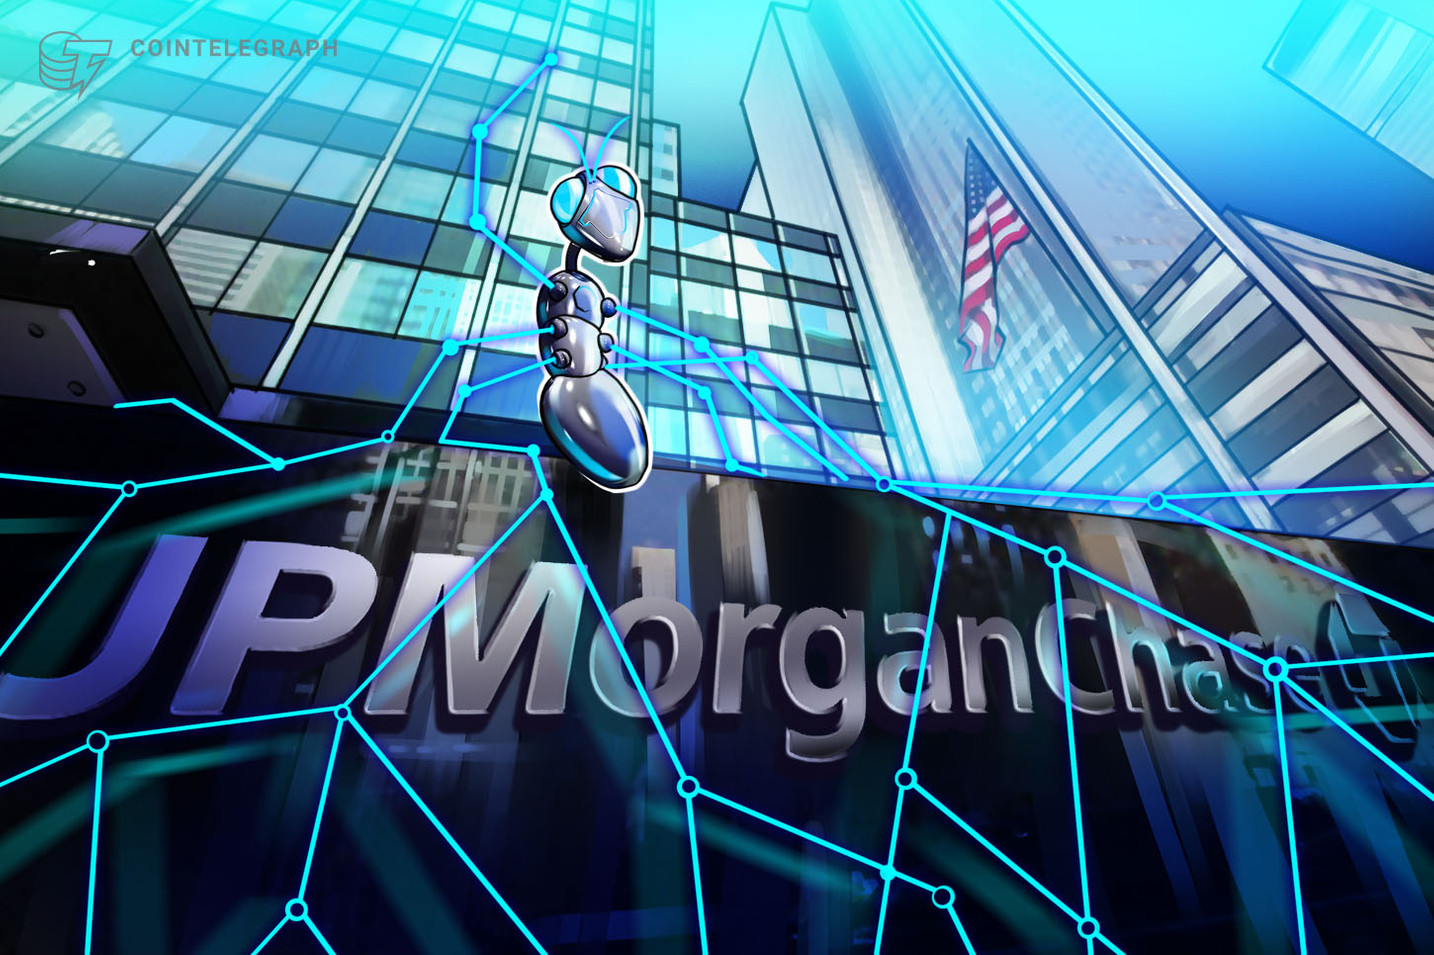 Report: JPMorgan Considers Merging Blockchain Unit With ConsenSys